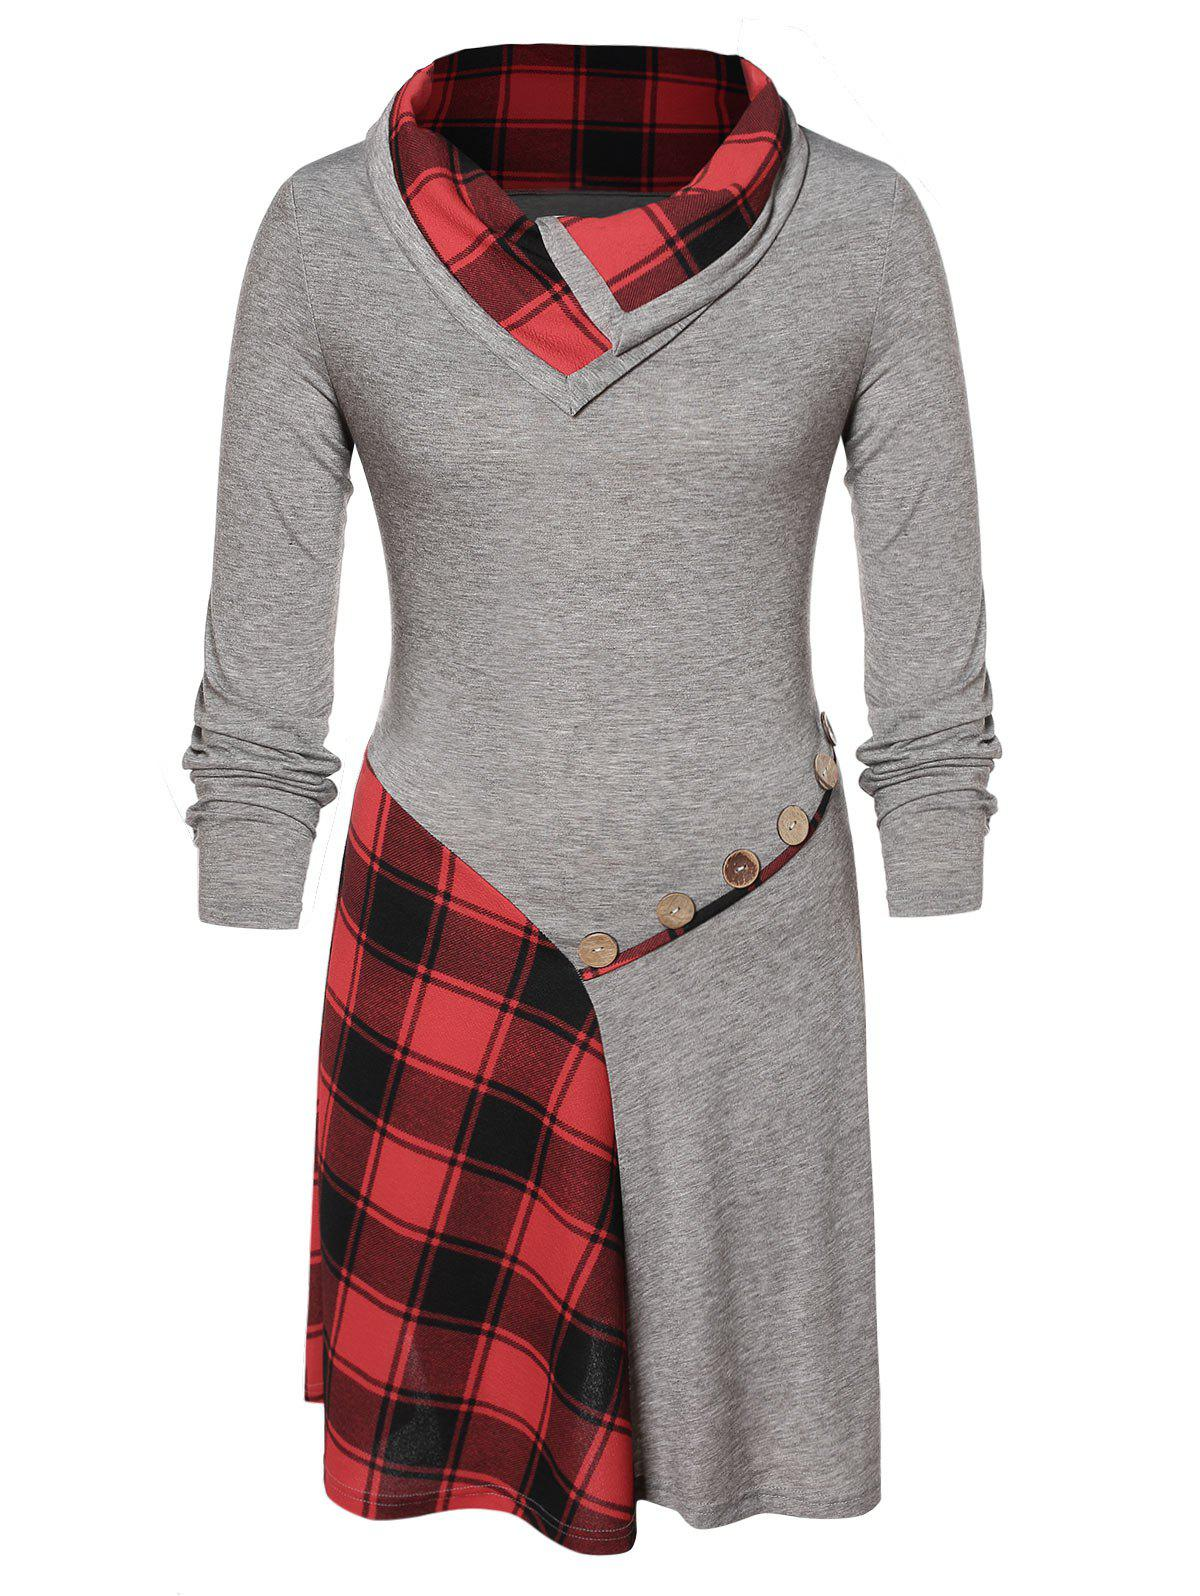 New Plus Size Plaid Patchwork Buttons Funnel Collar Dress